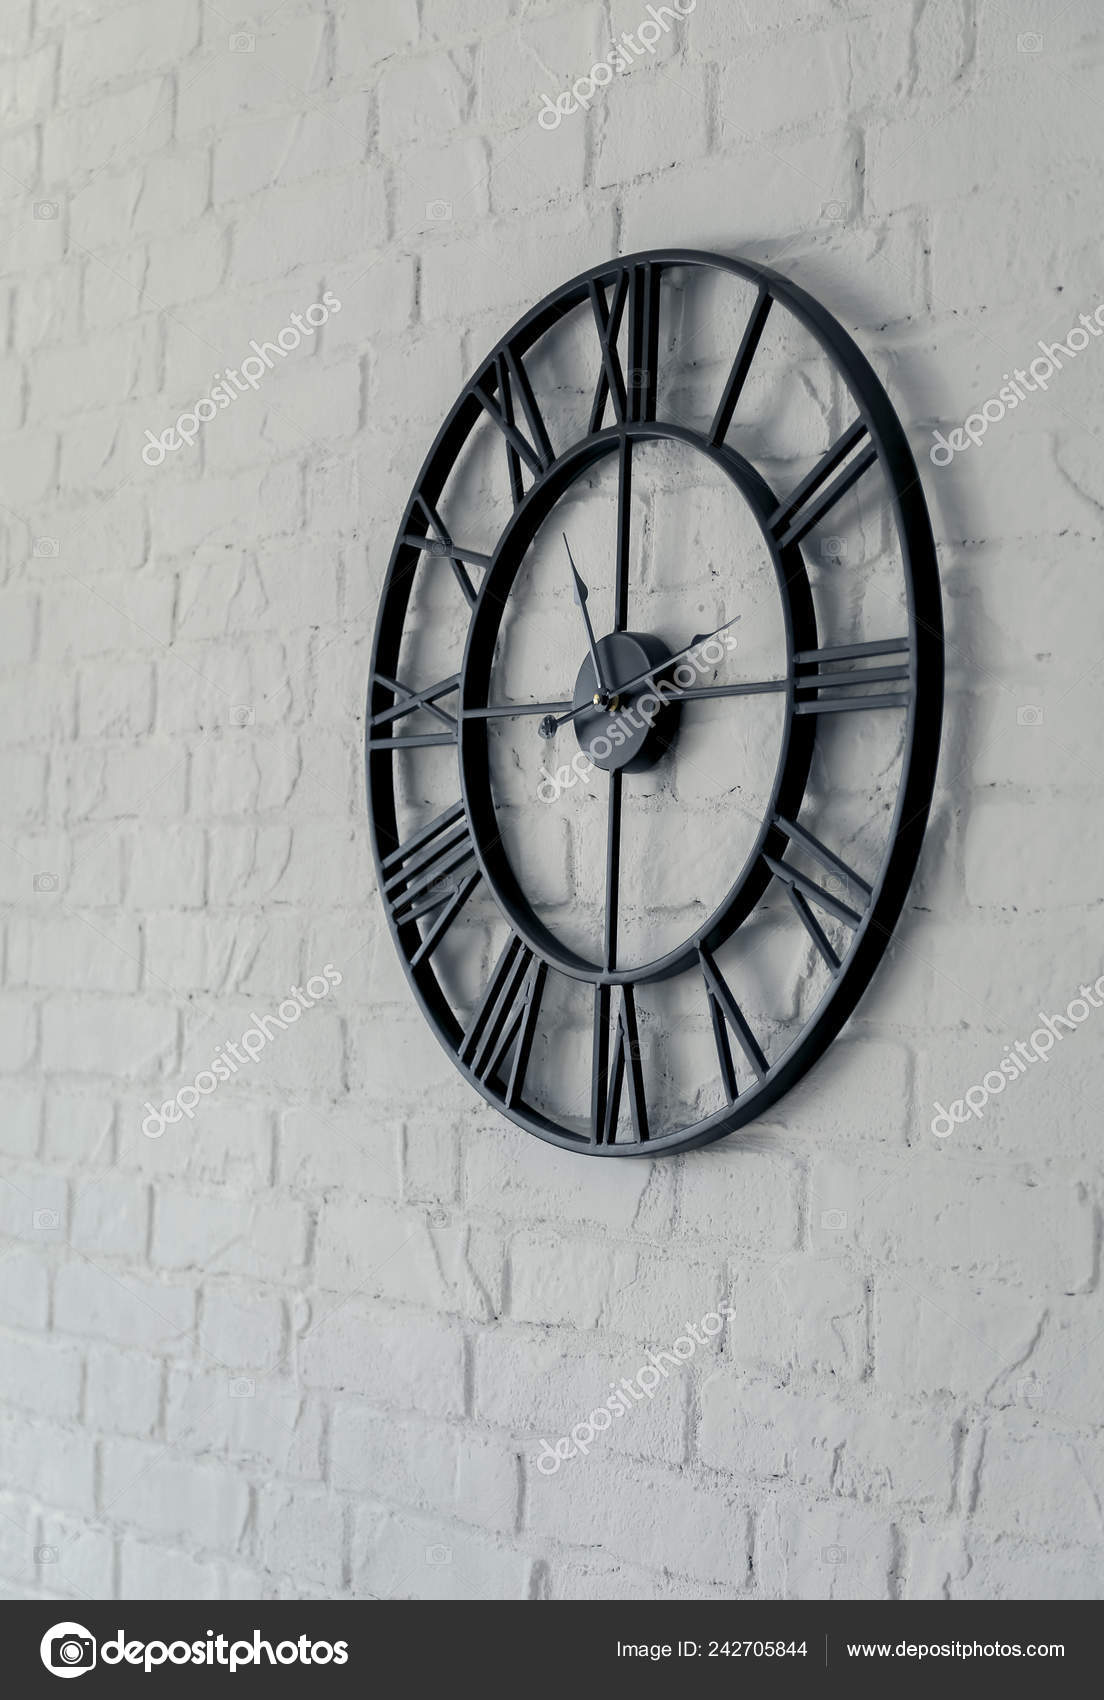 Vintage Clock Roman Numeral Wall Clock Face Dialrustical White Brick Stock Photo Image By Ondrooo 242705844